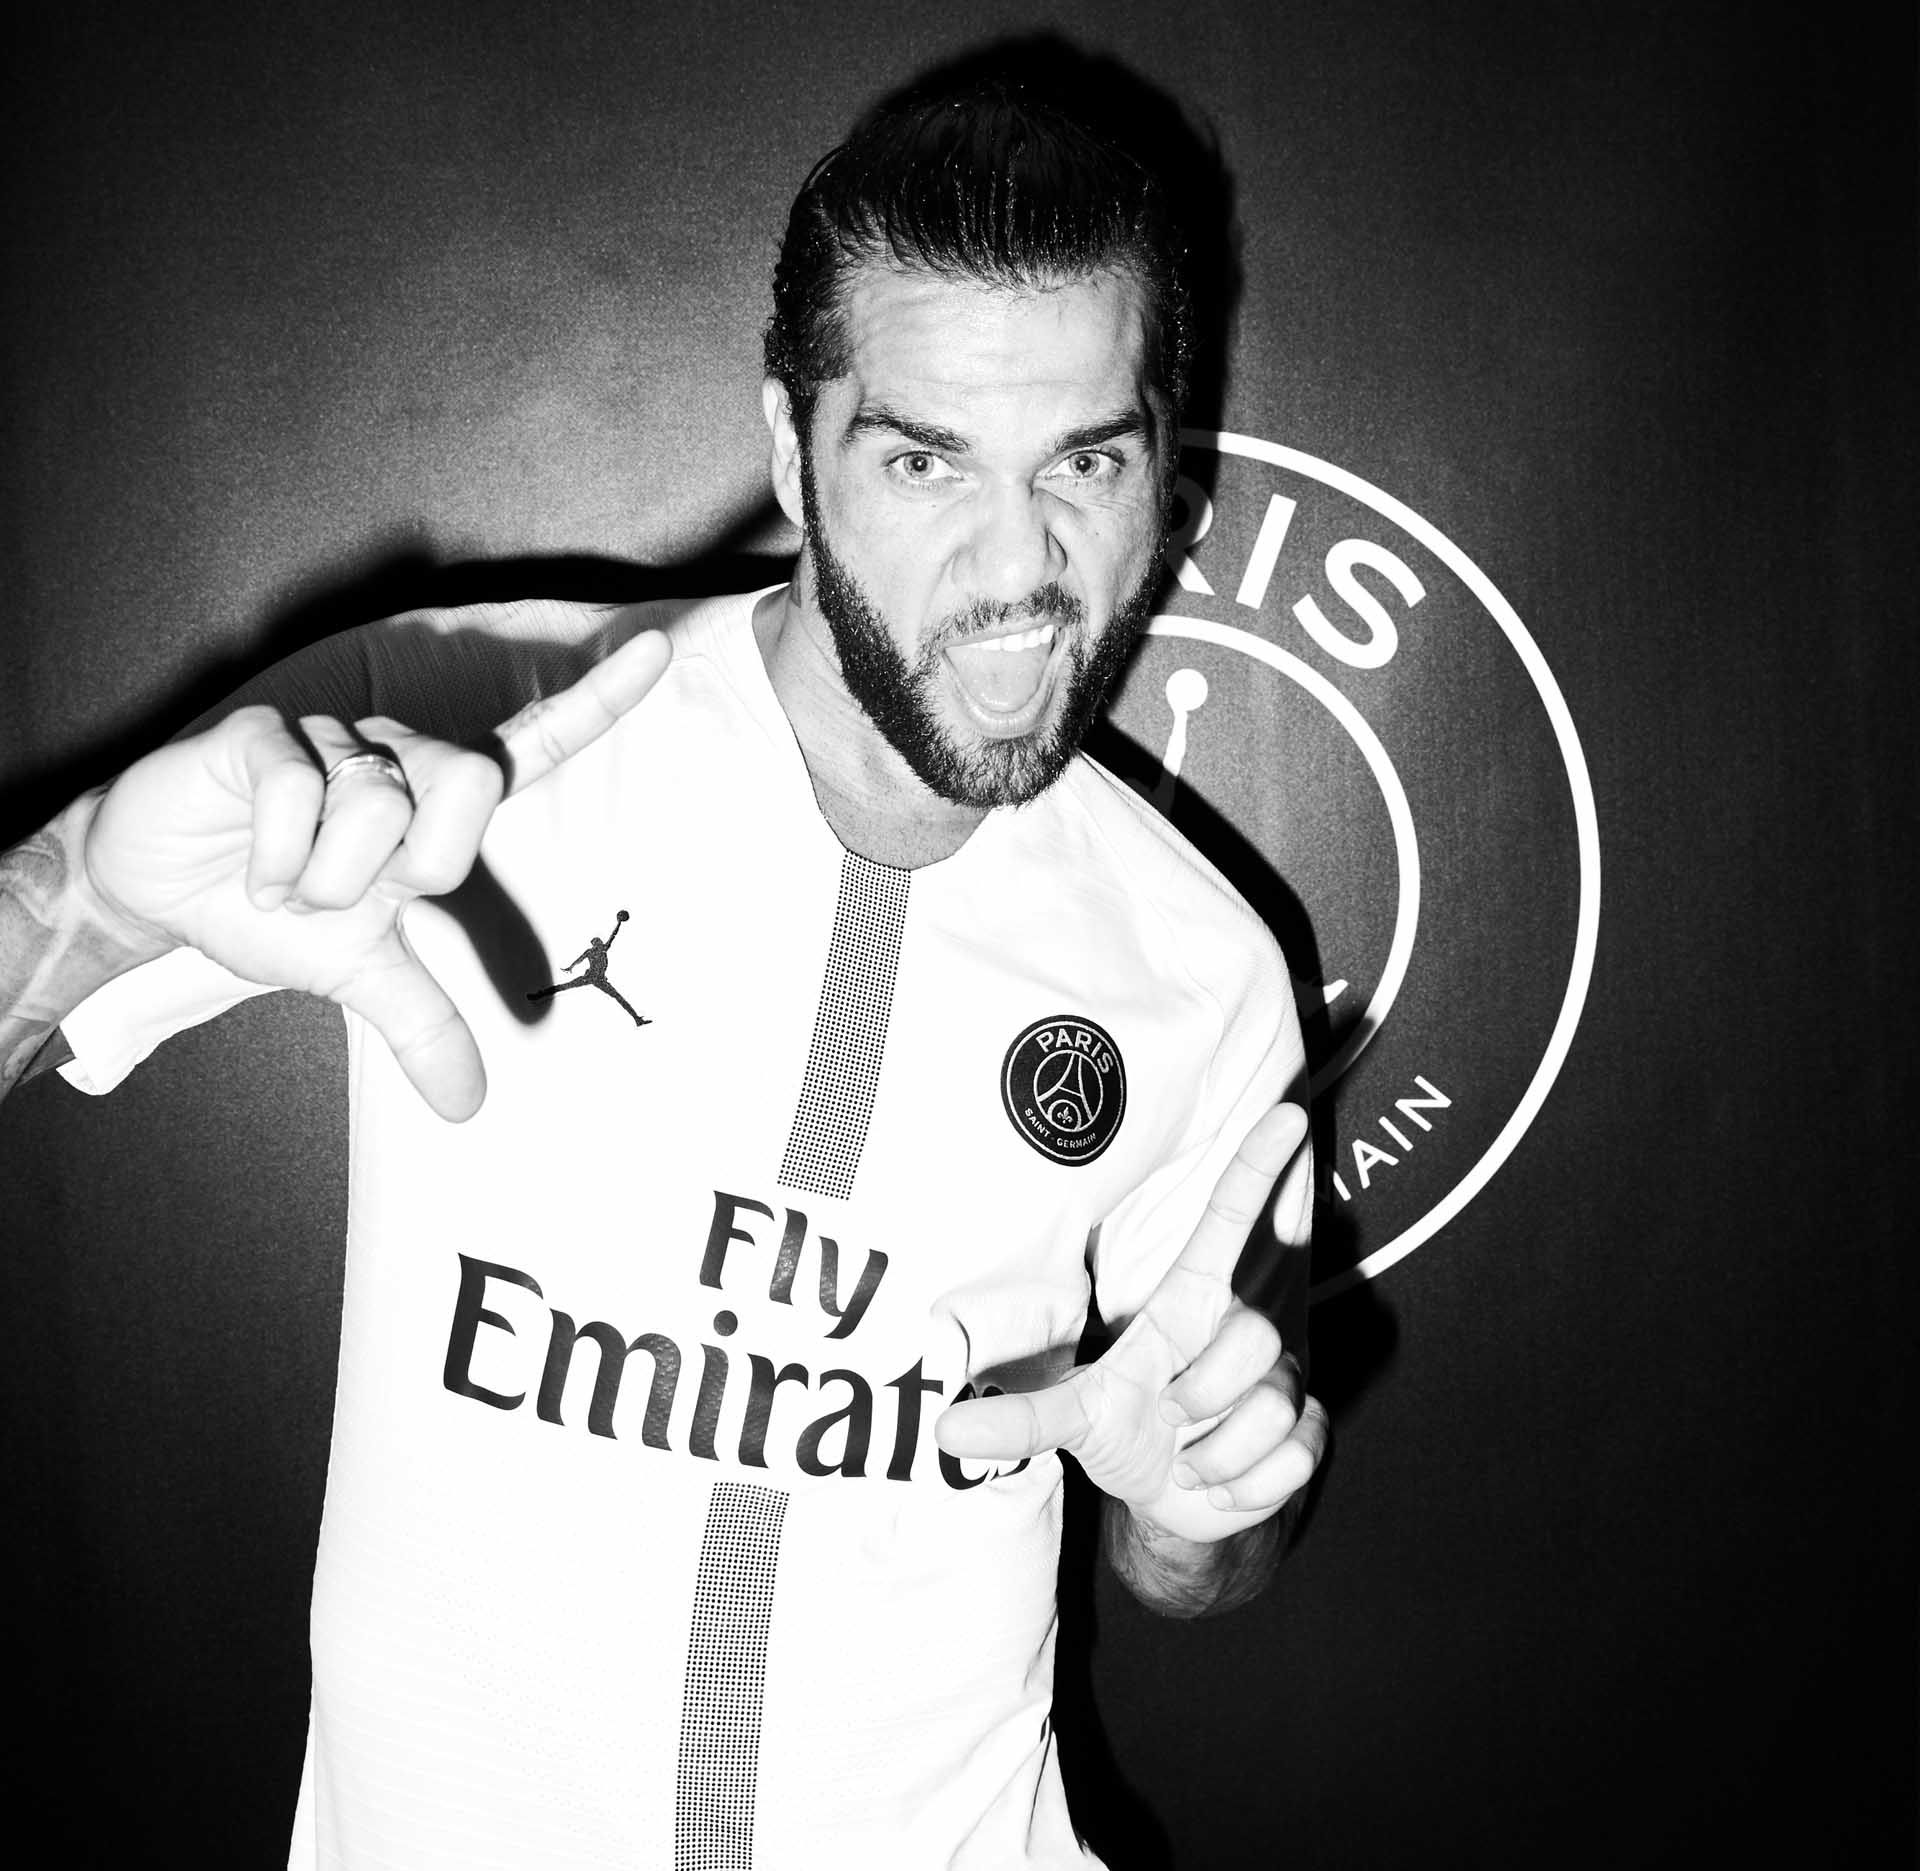 alves-9-psg-jordan-interview-min.jpg